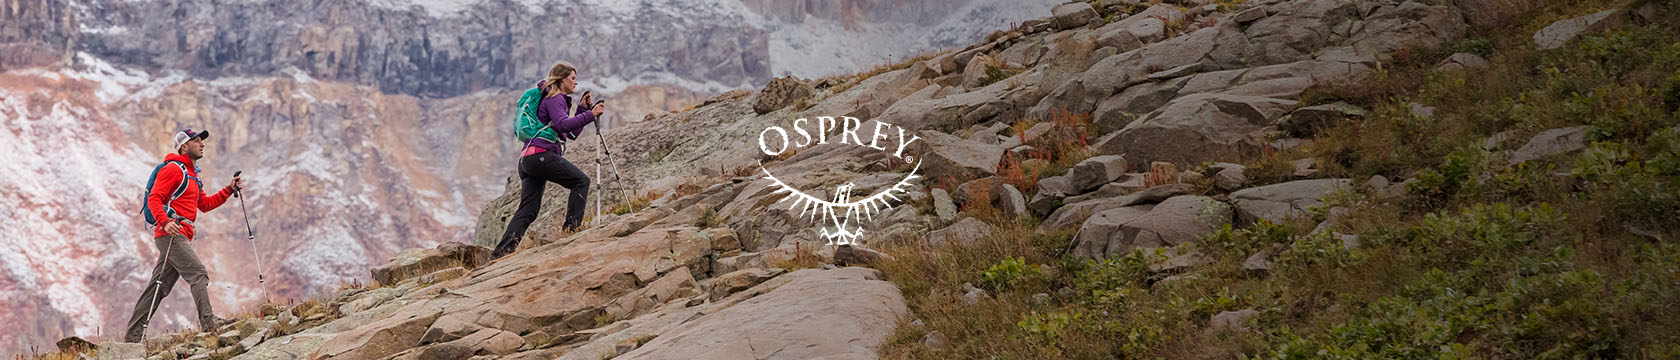 A couple with Osprey backpacks walking up a rocky hill somewhere in the mountains.